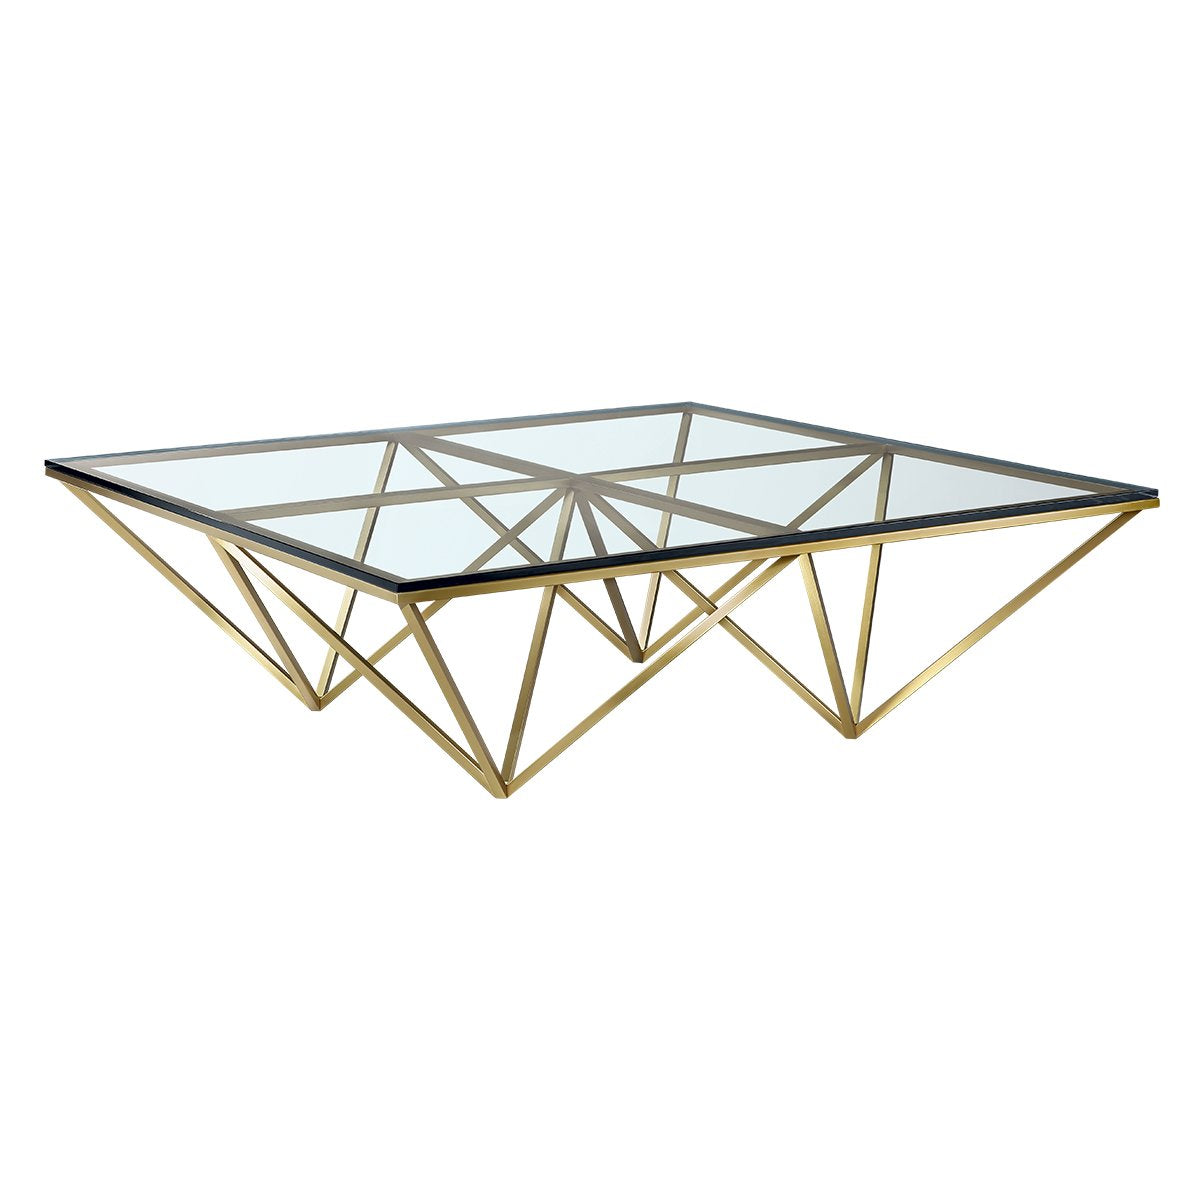 [FV445CLRGLD] Elin Coffee Table